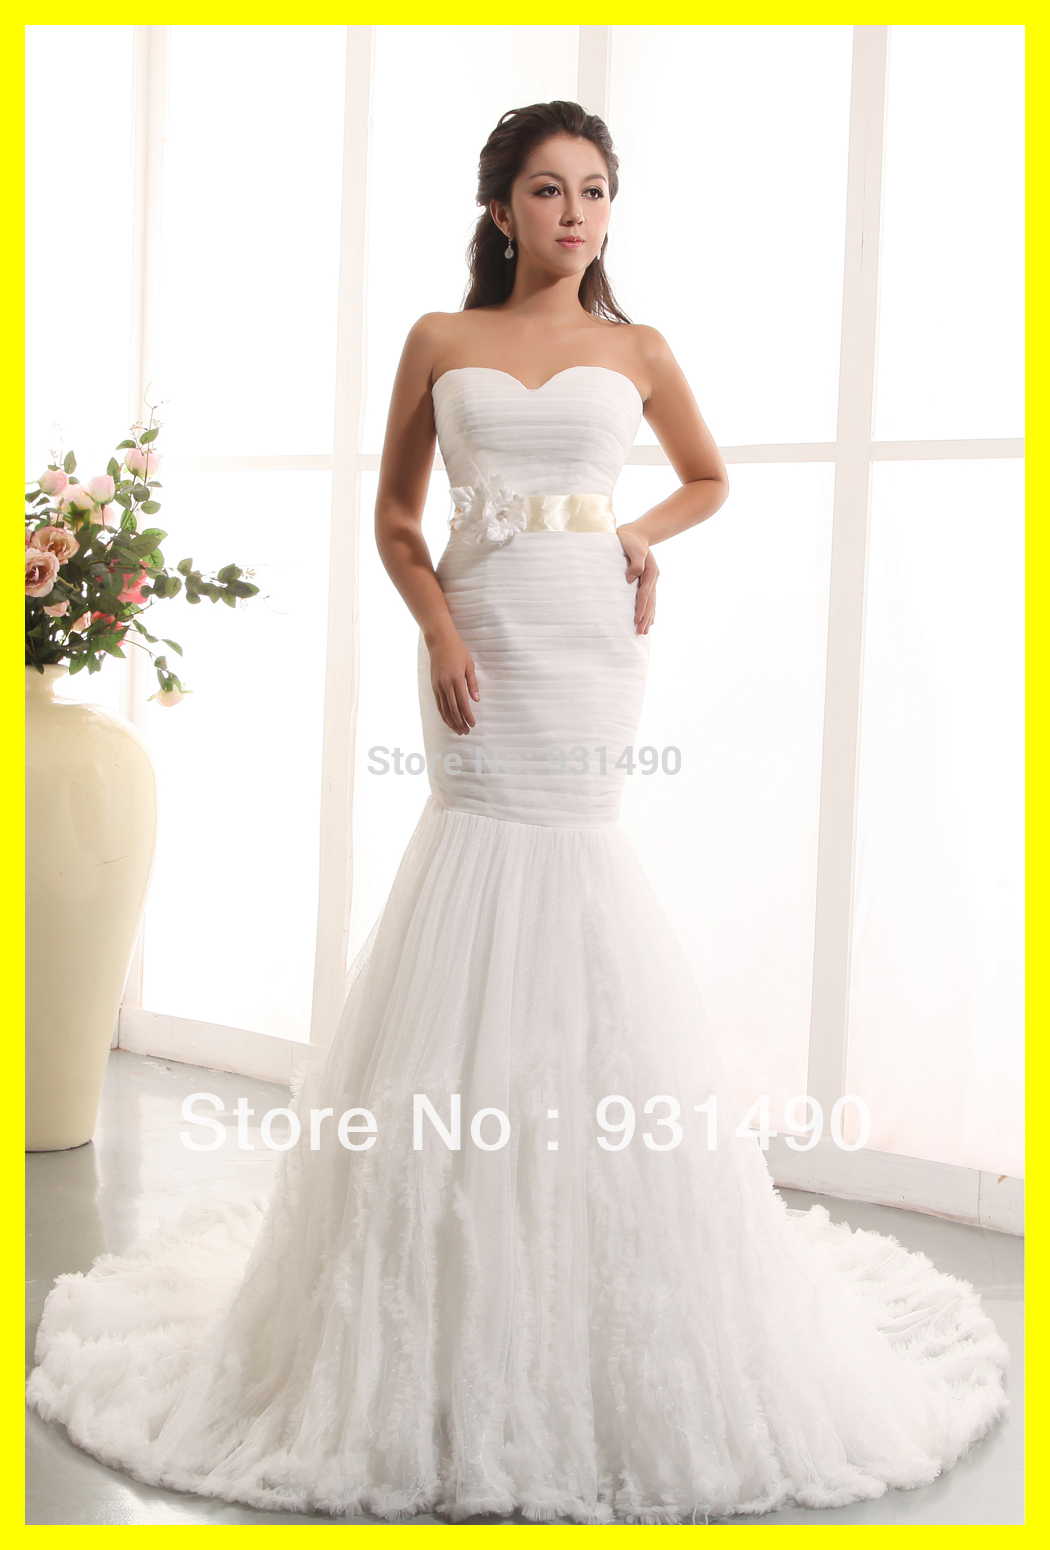 cheap used wedding dresses for sale photo - 1